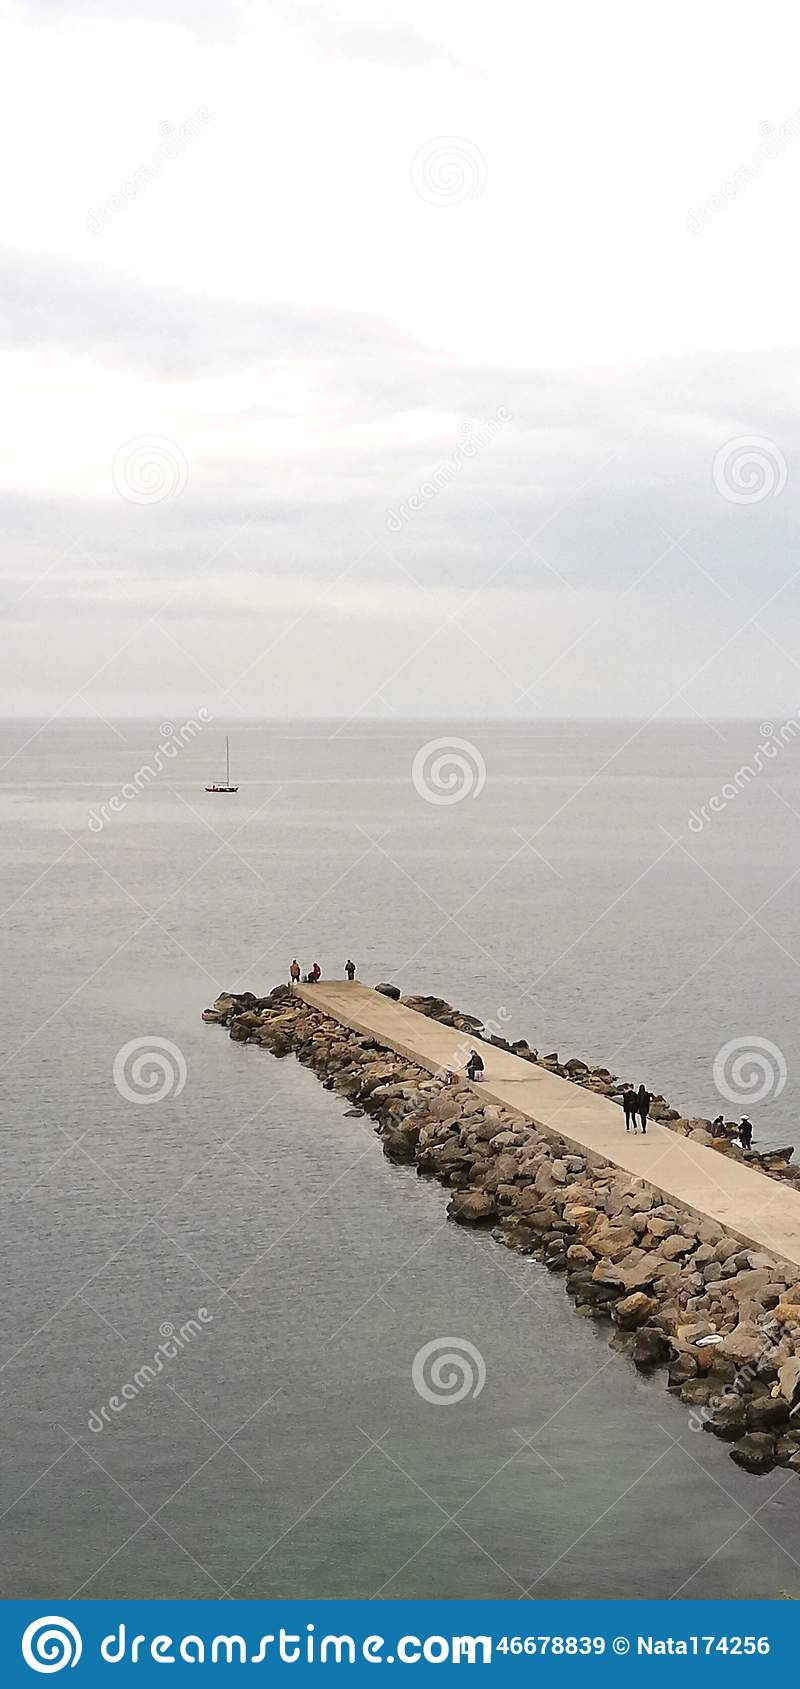 Background. Sea evening landscape. On the stone mall are visible silhouettes of people.